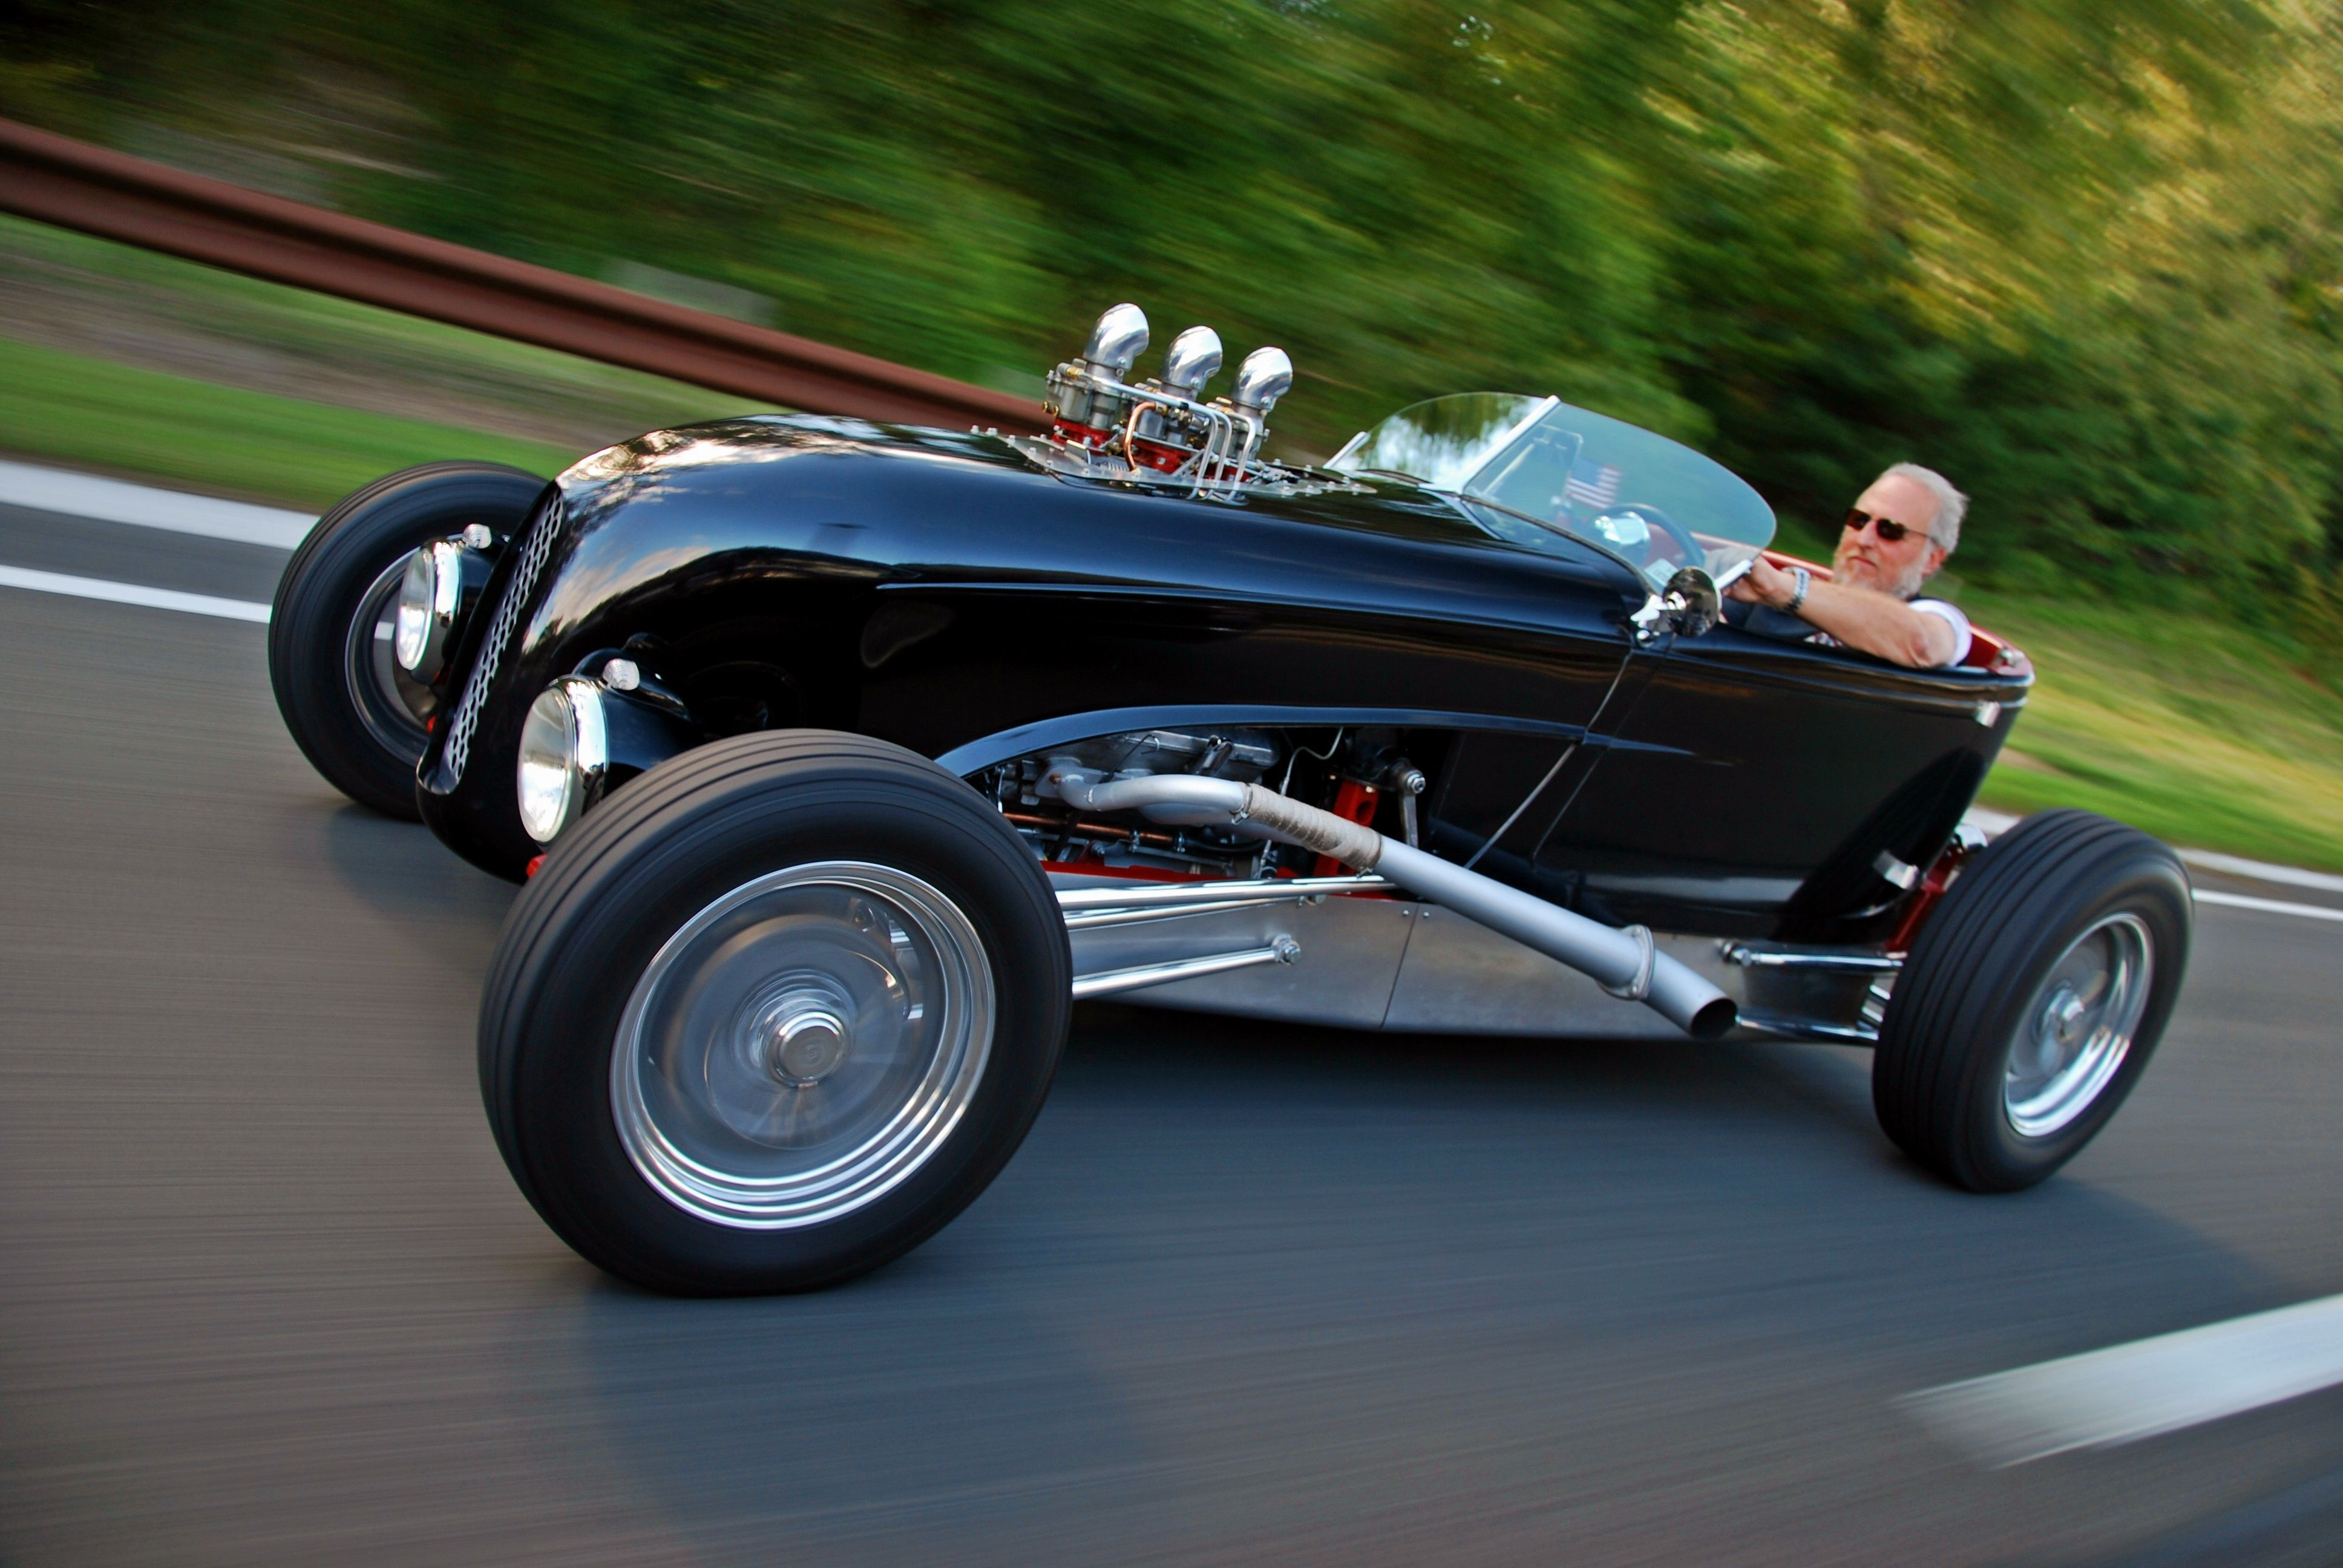 It S A Zipper Lakes Modified Roadster Powered By A Vintage Alfa V6